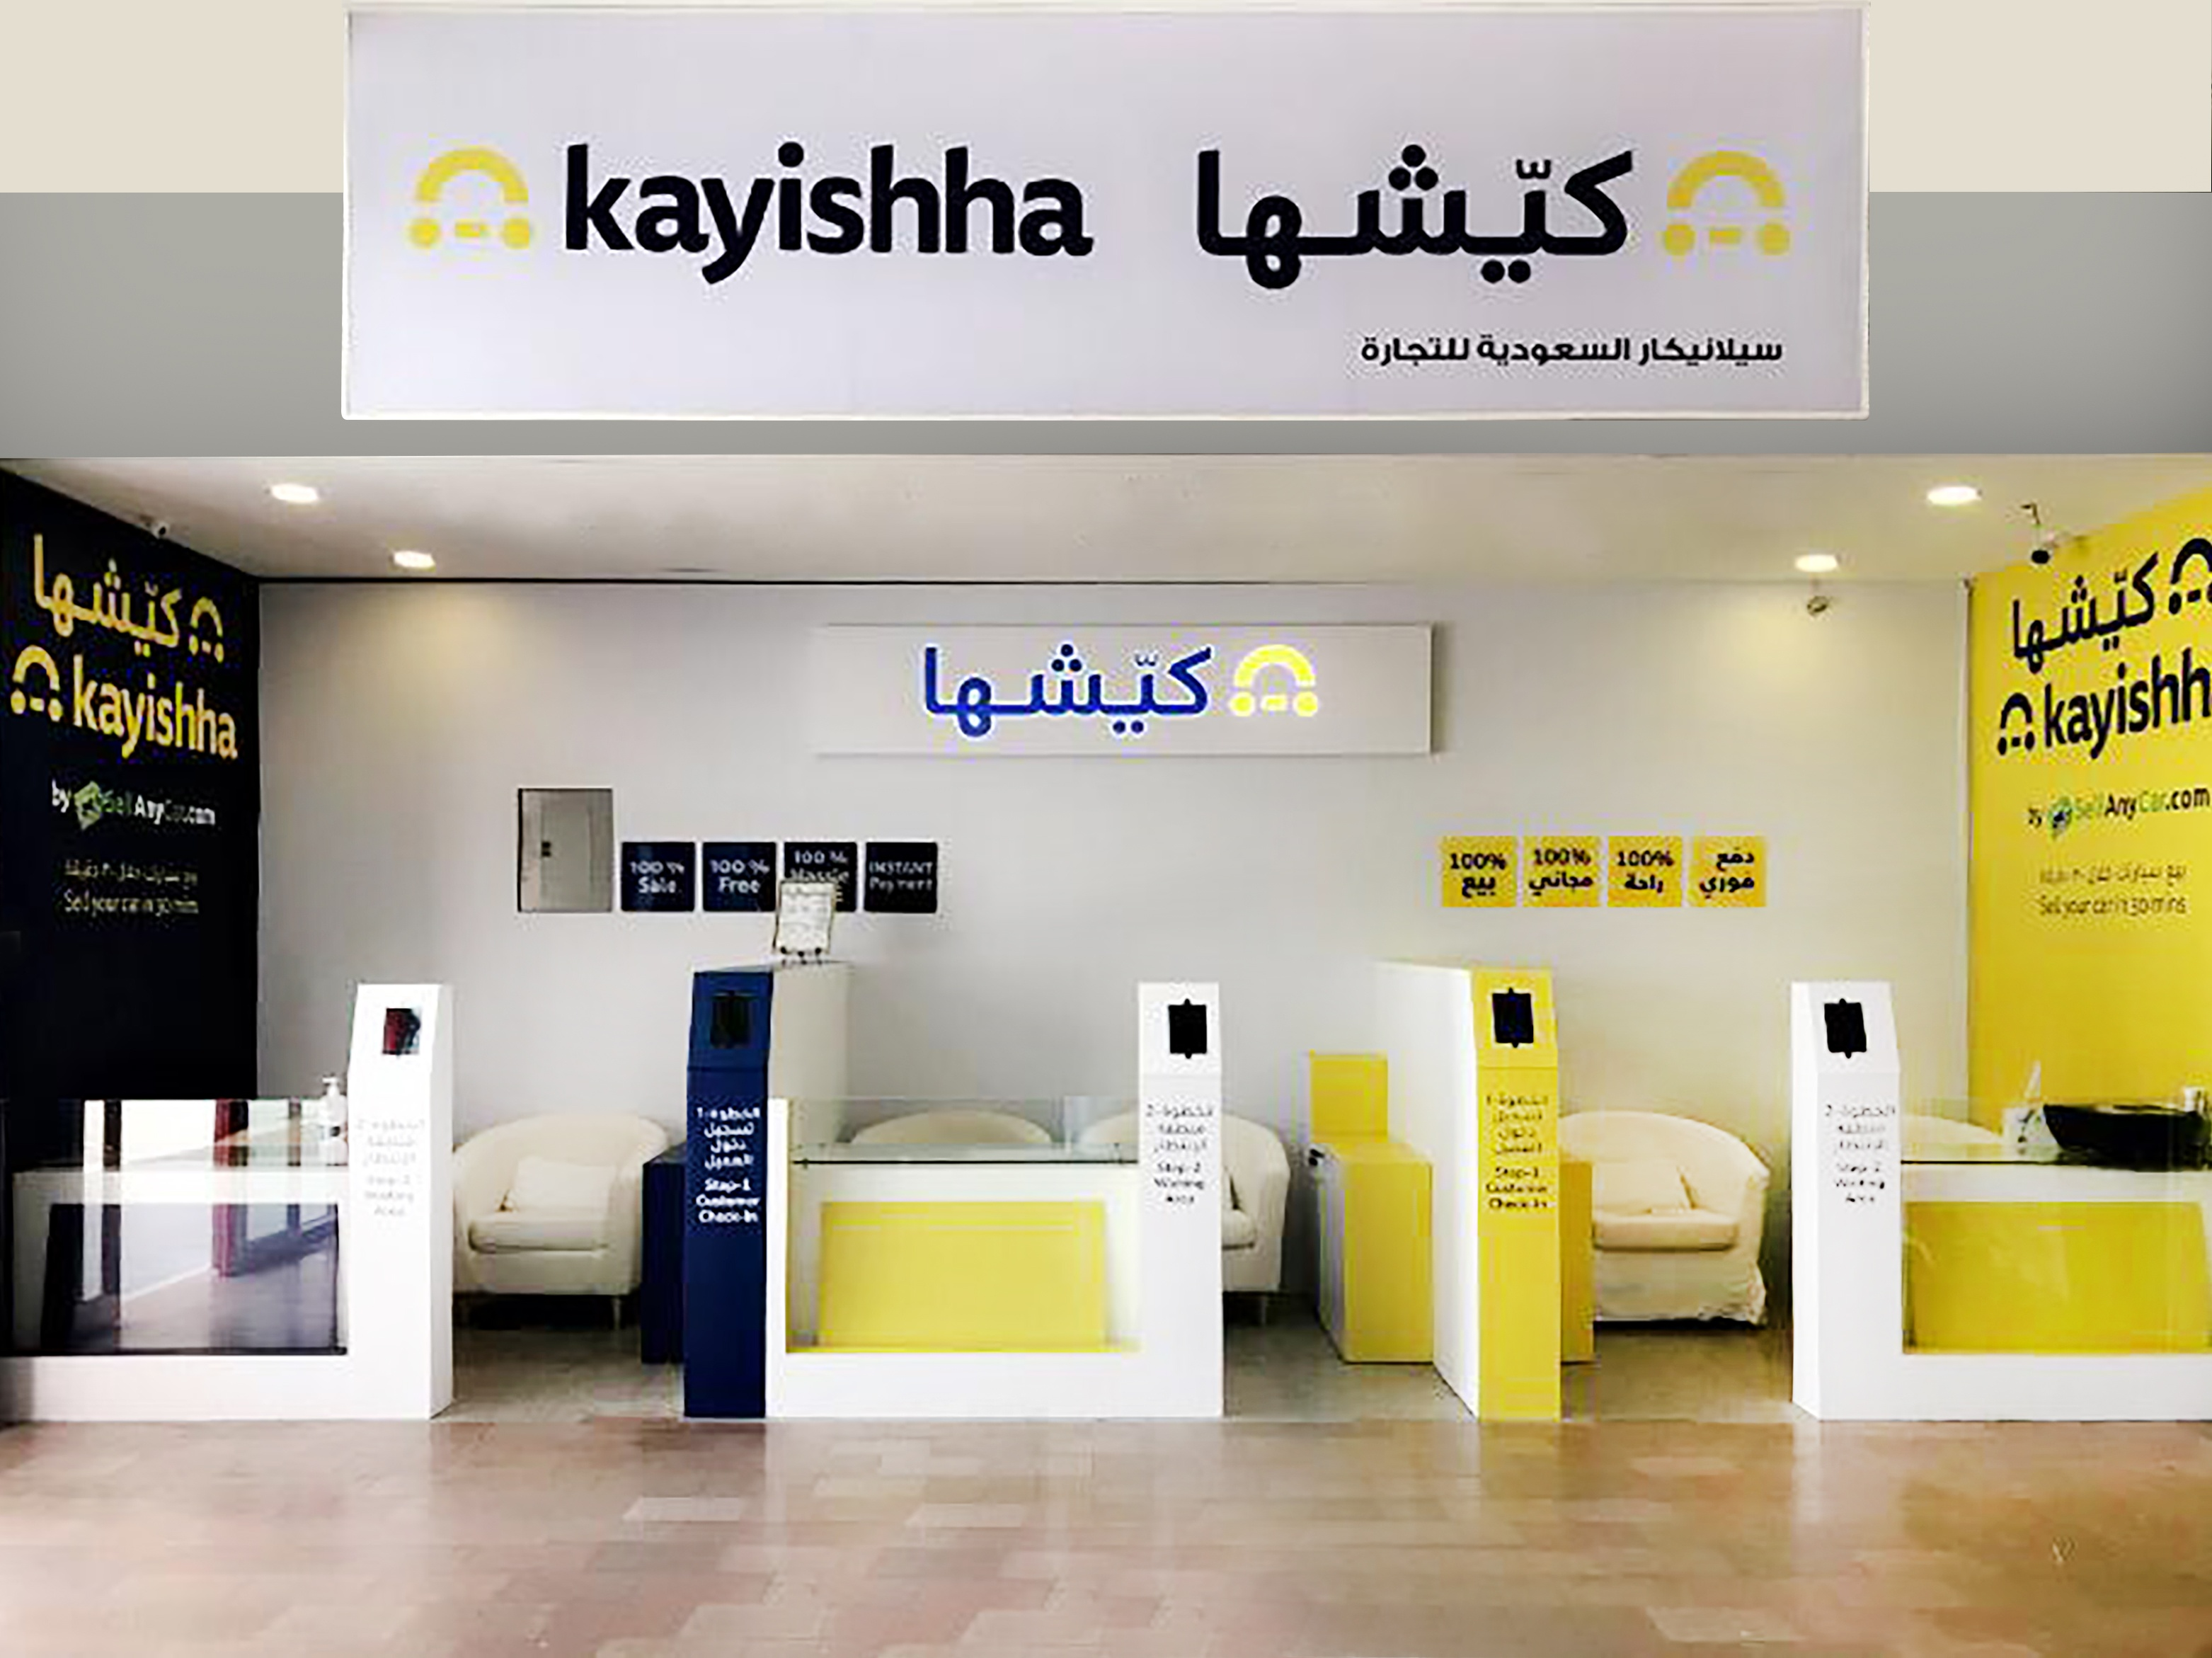 "SellAnyCar.com Expands into Saudi Arabia with the Launch of the New ""Kayishha"" Online Used Auto  Marketplace"